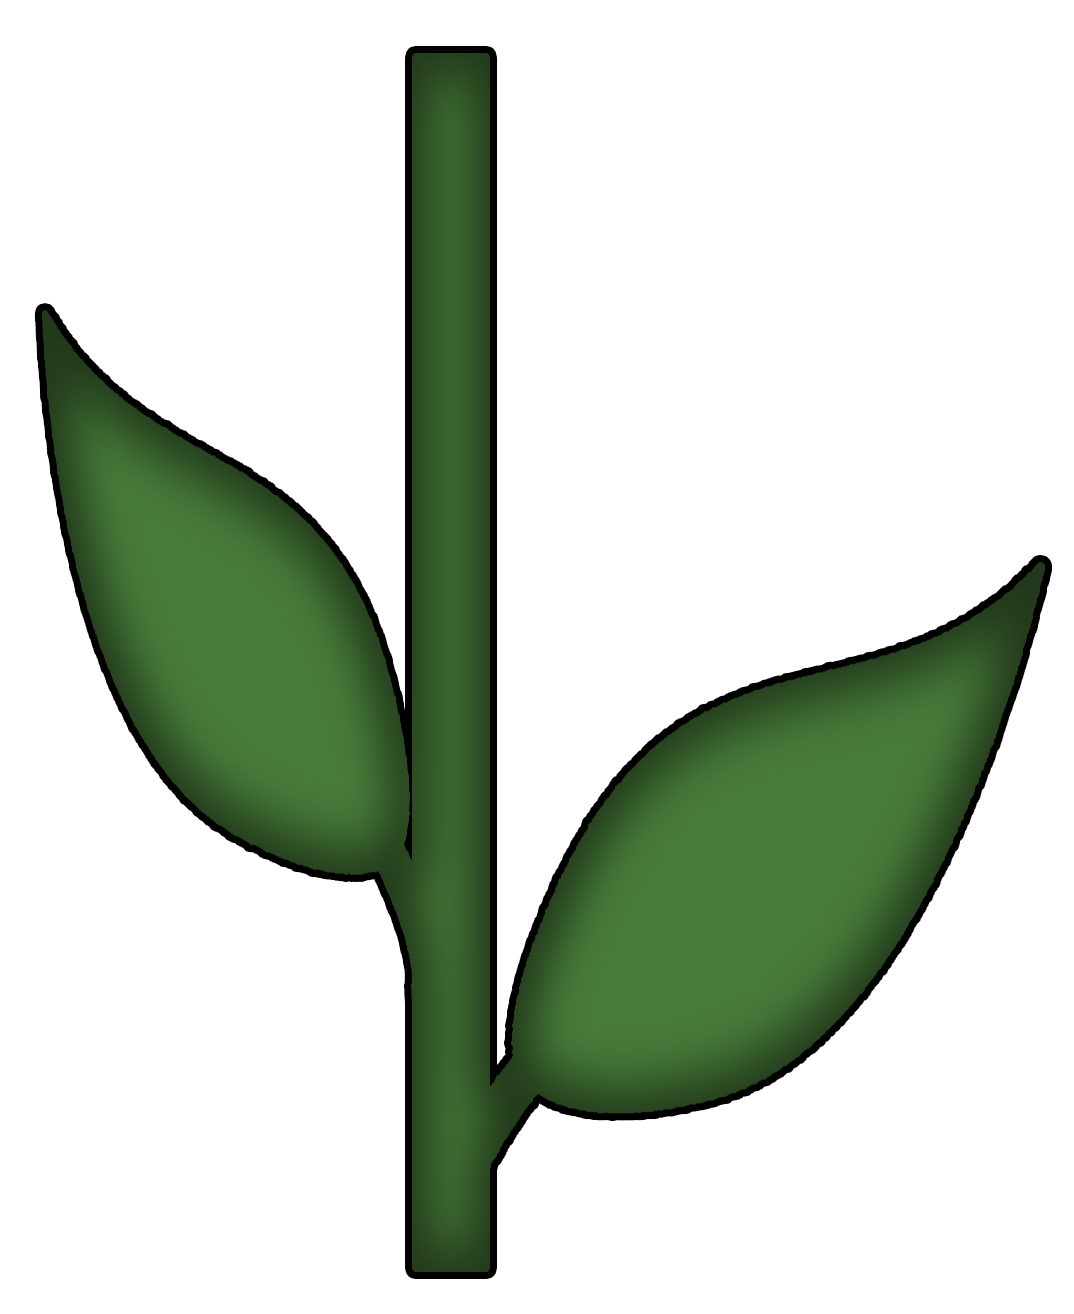 flower leaf clipart - photo #22